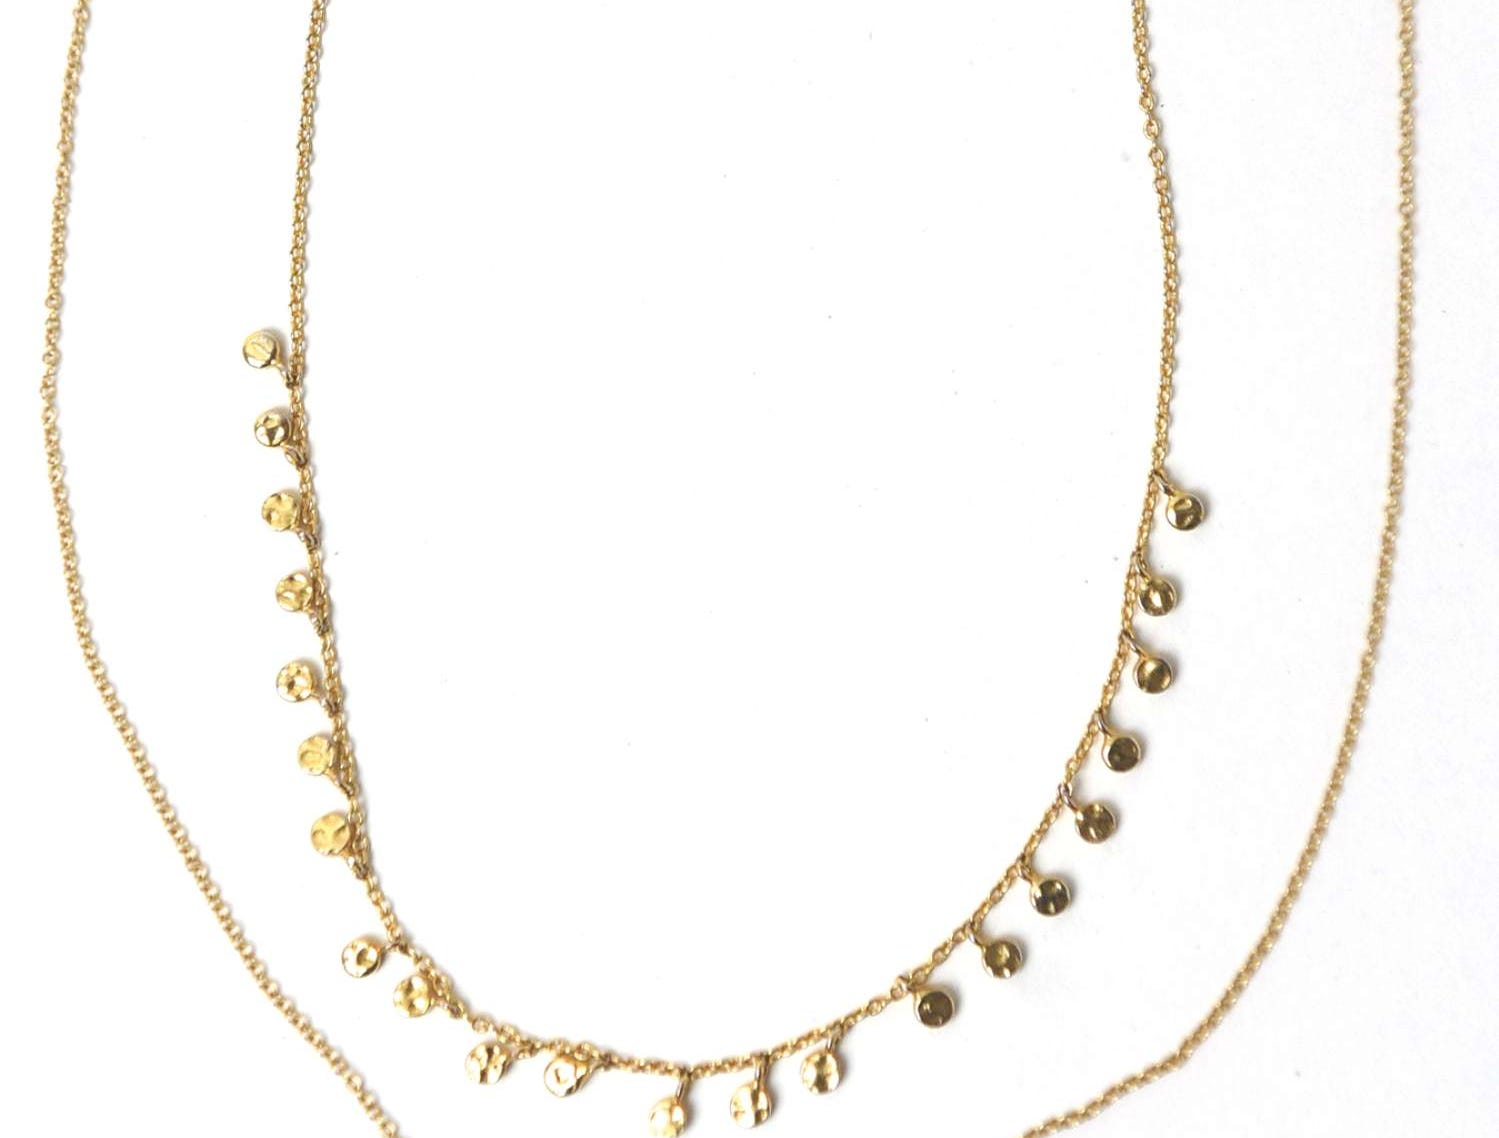 Gold Chain Necklaces: They're perfect to go with just about any outfit and they're gold — my favorite!The smaller necklace is from a brand called Gorjana and the evil eye is David Yurman; Kendall Marie Zoppa (201) Personal Style